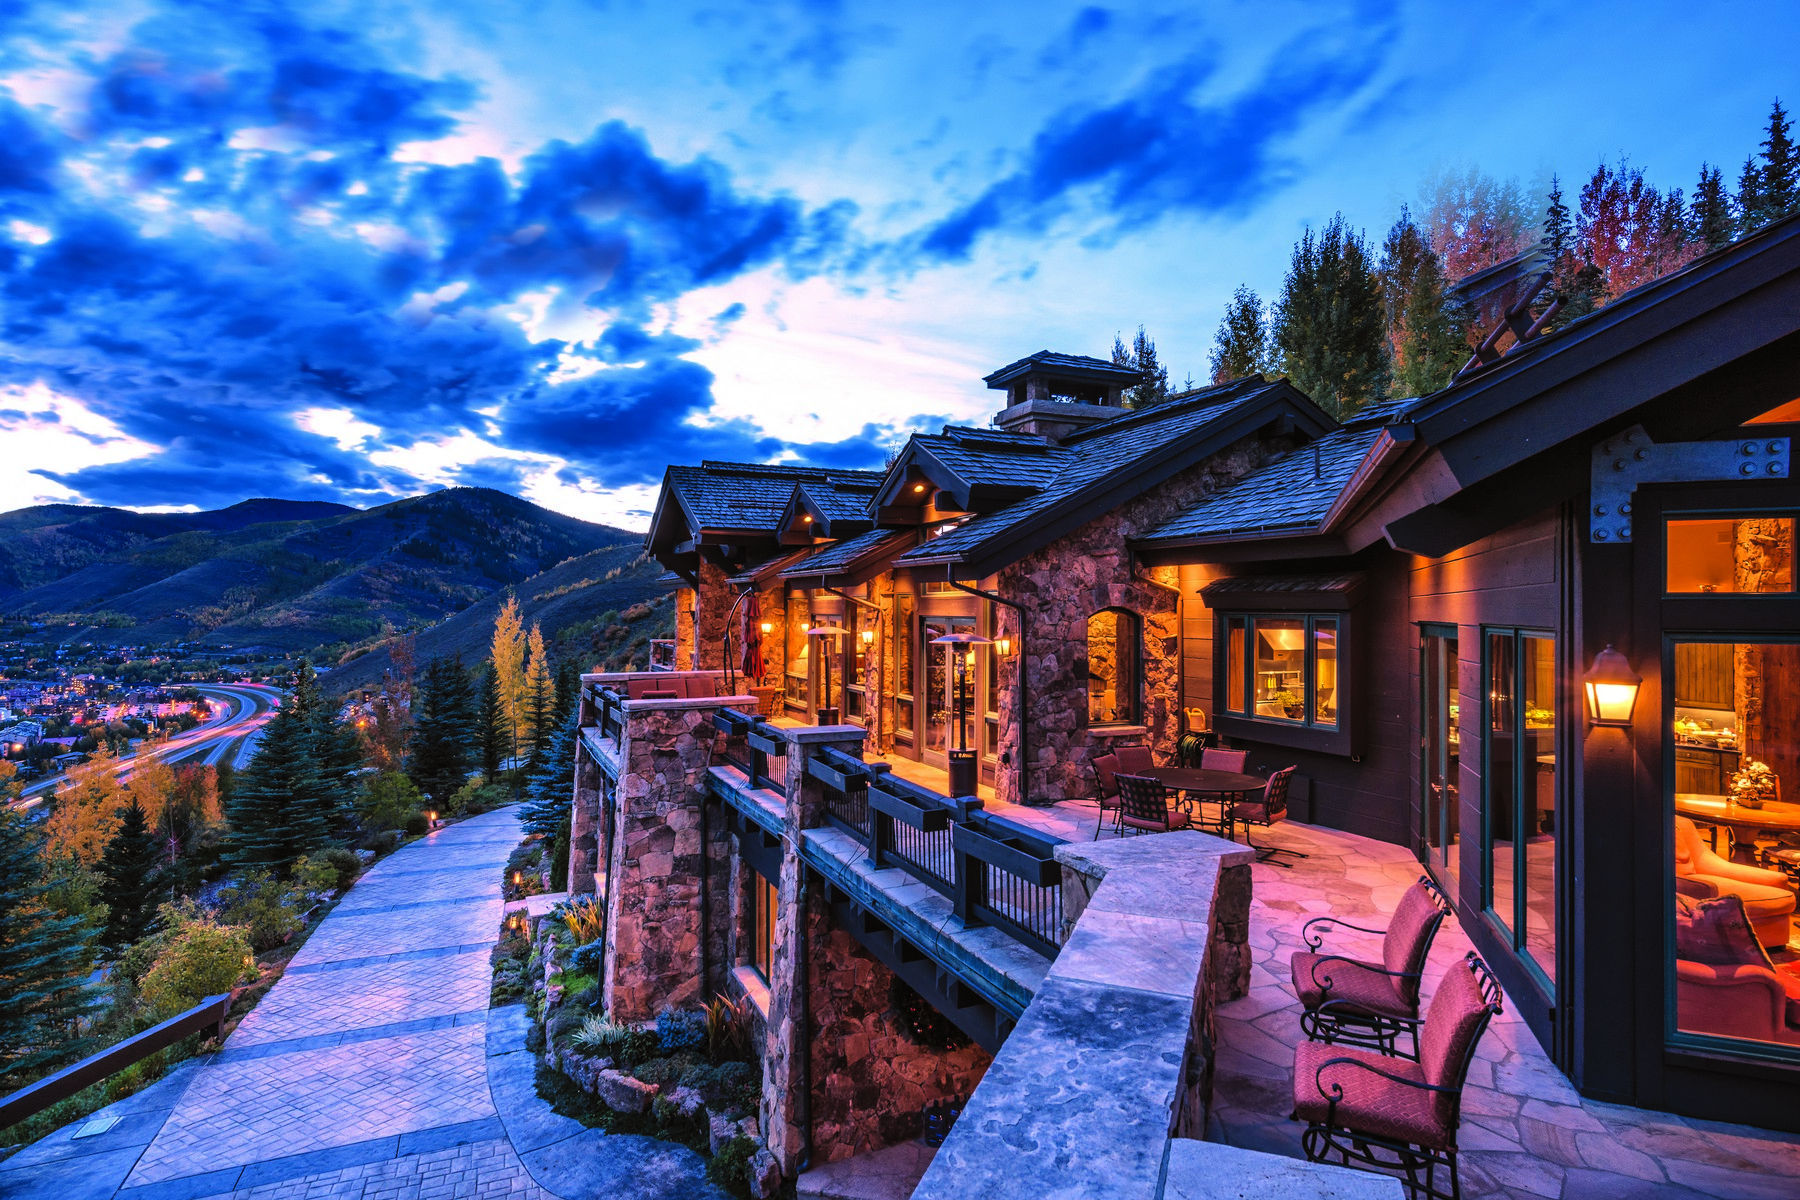 Single Family Home for Active at Direct Views of Vail Mountain 971 Spraddle Creek Rd Vail, Colorado 81657 United States